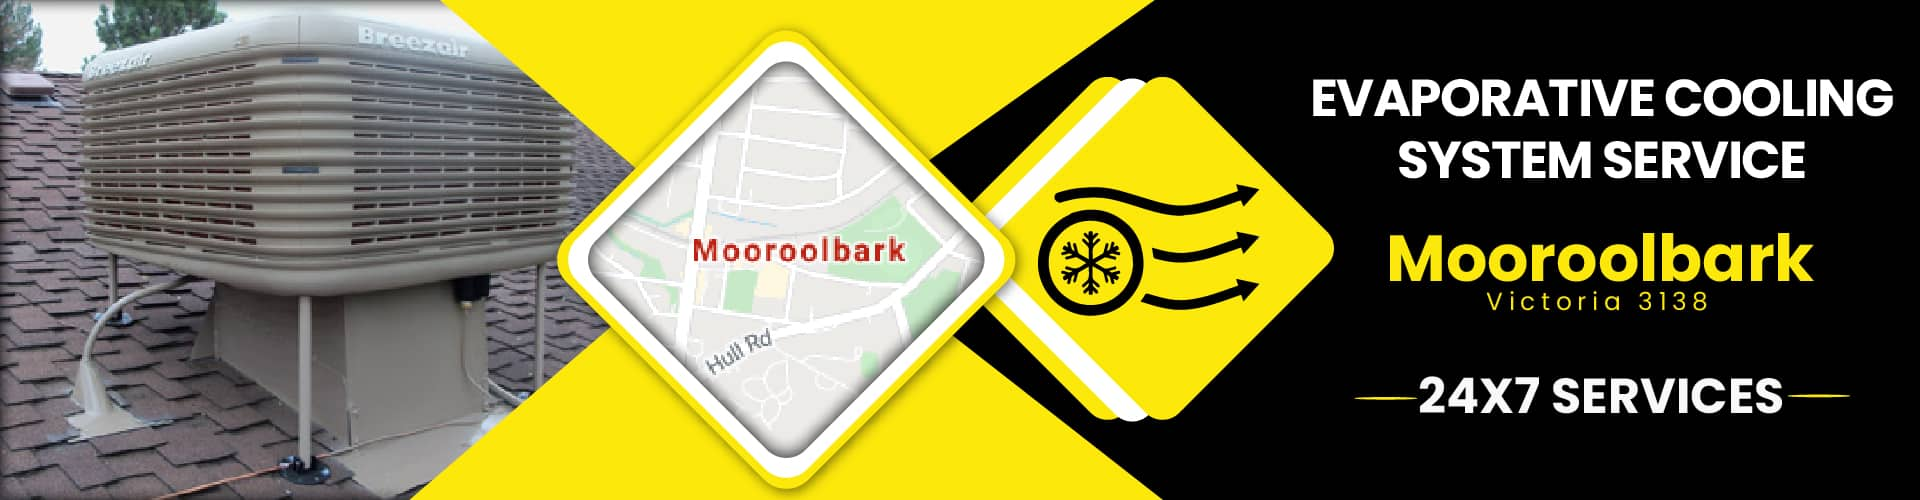 Evaporative Cooling System Repair and Servicing Mooroolbark